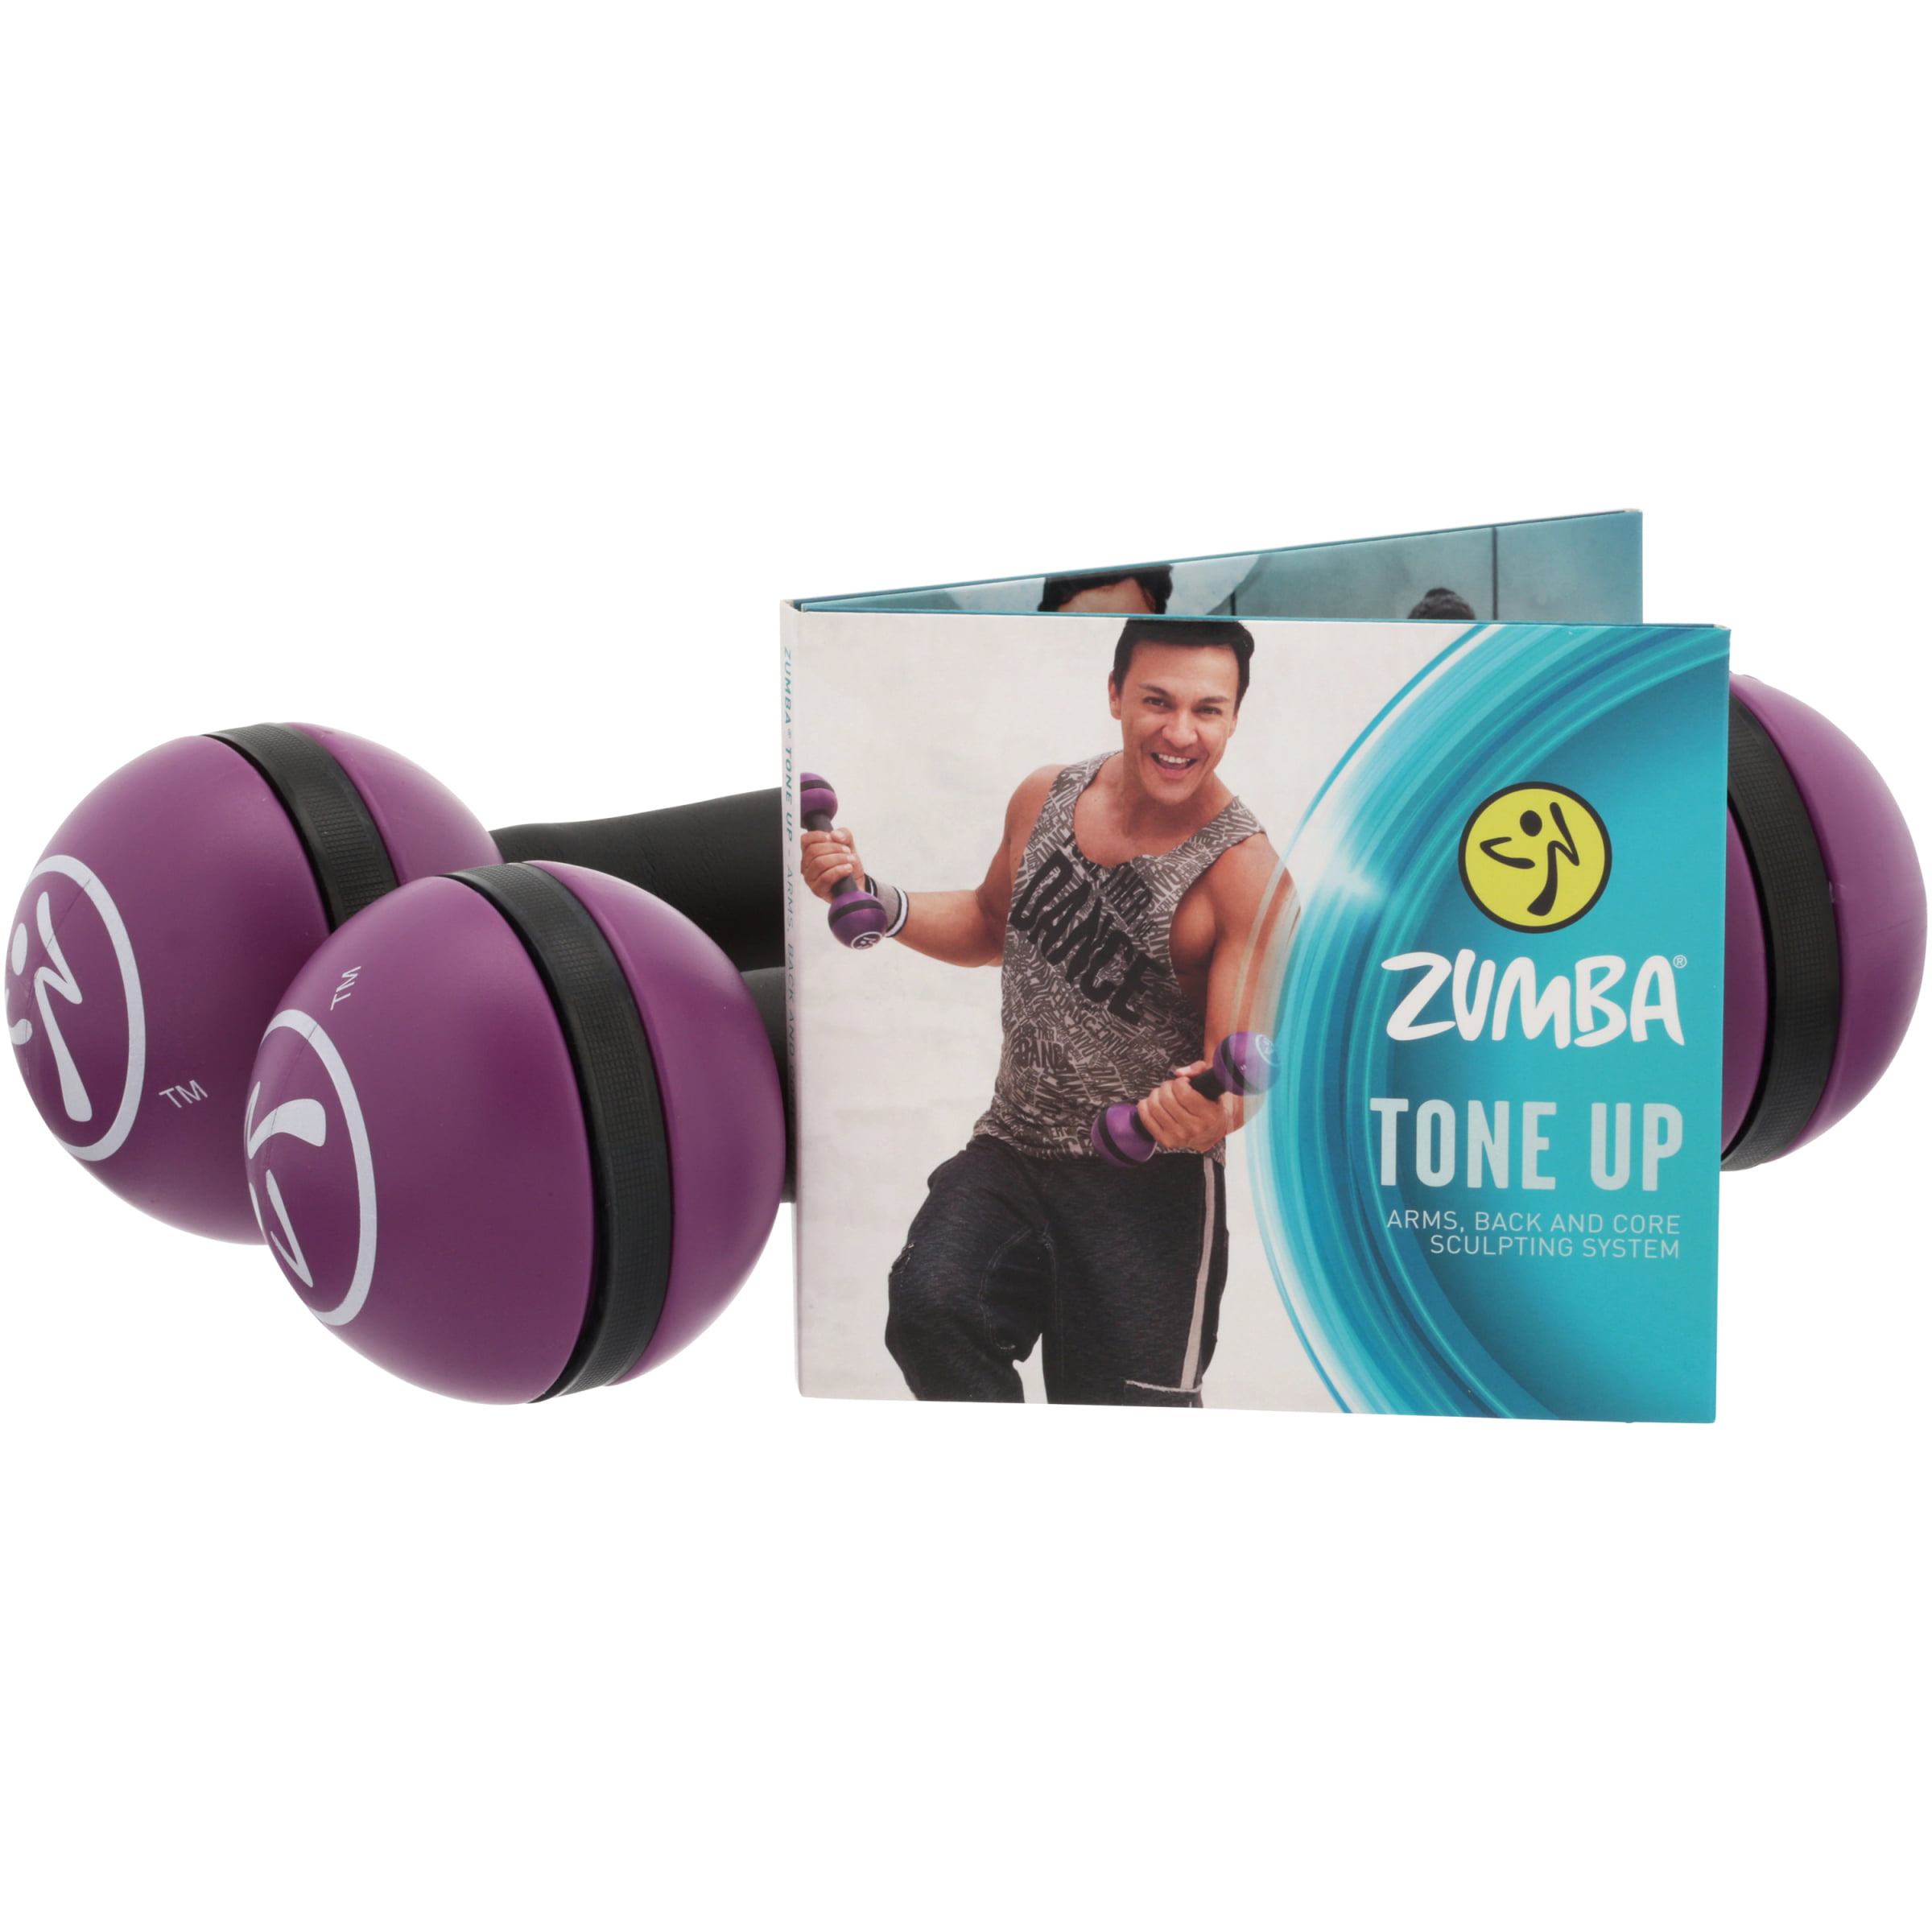 Zumba Tone Up Plus Arms, Back and Core Sculpting System Variety Pack 9 pc Box by Zumba Fitness, LLC